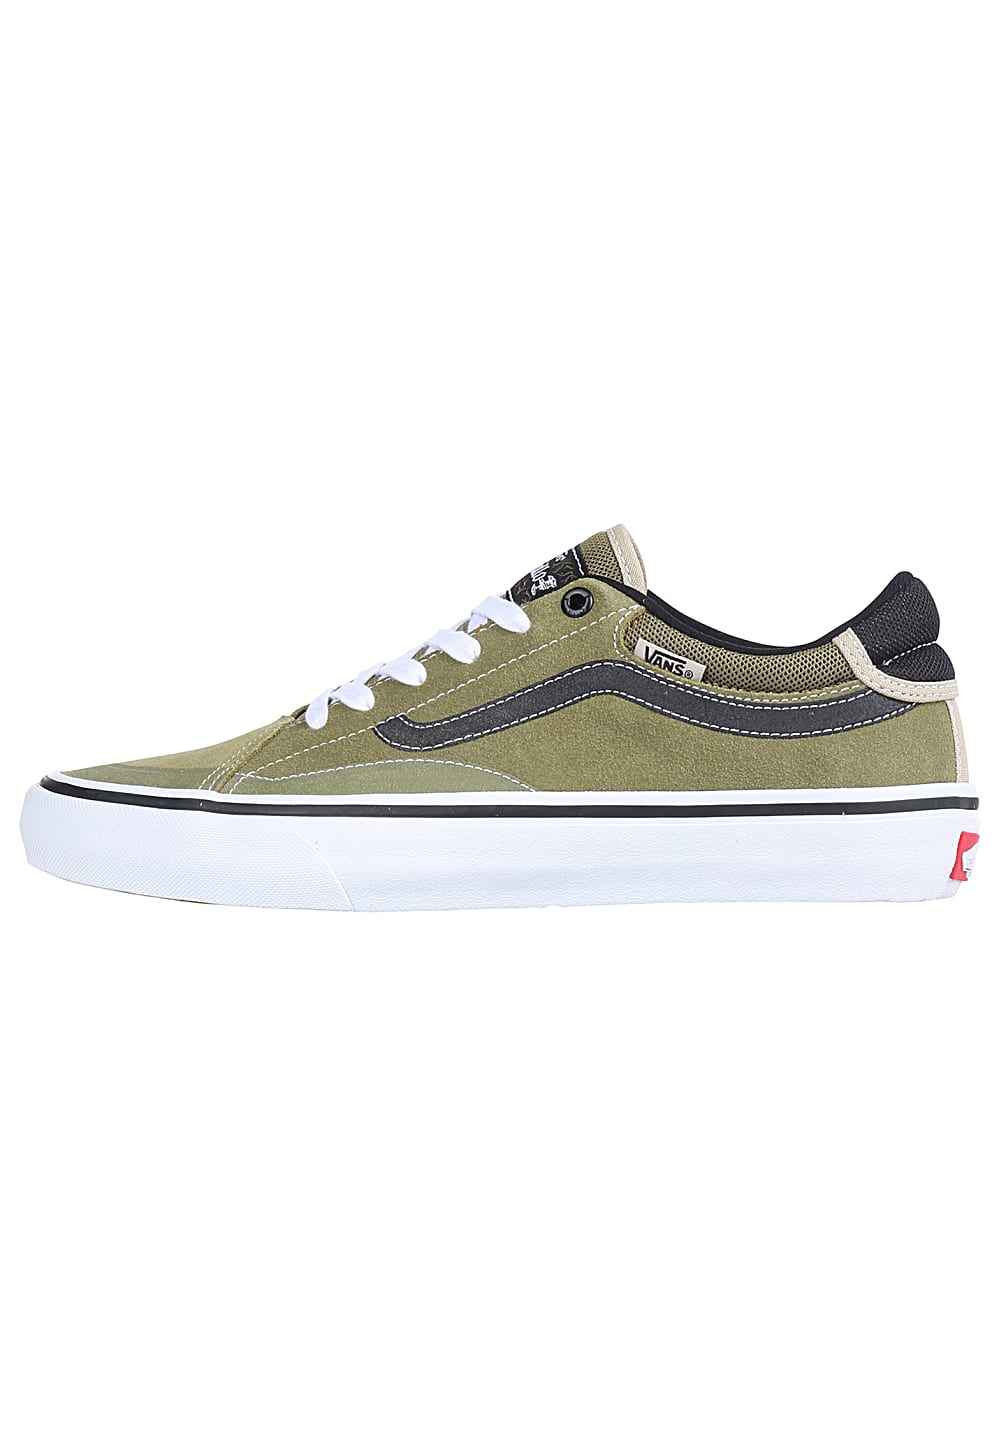 VANS TNT ADVANCED PROTOTYPE PRO LIZARDEUCALYPTUS